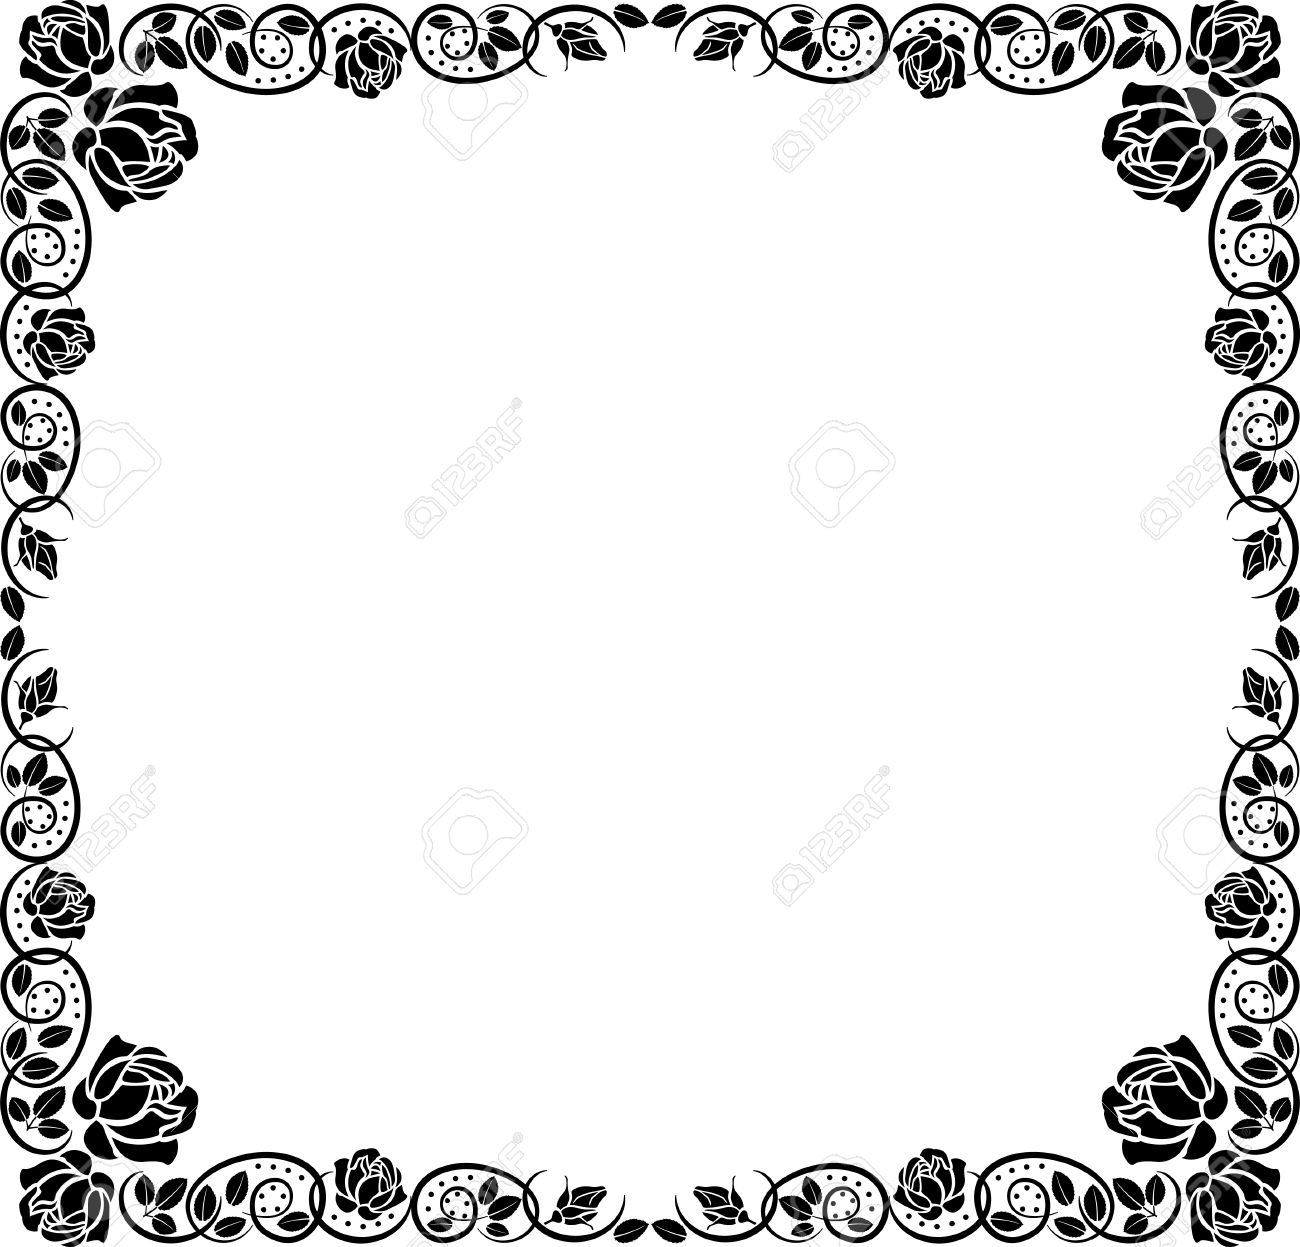 silhouette border with rose decoration Stock Vector - 11455292